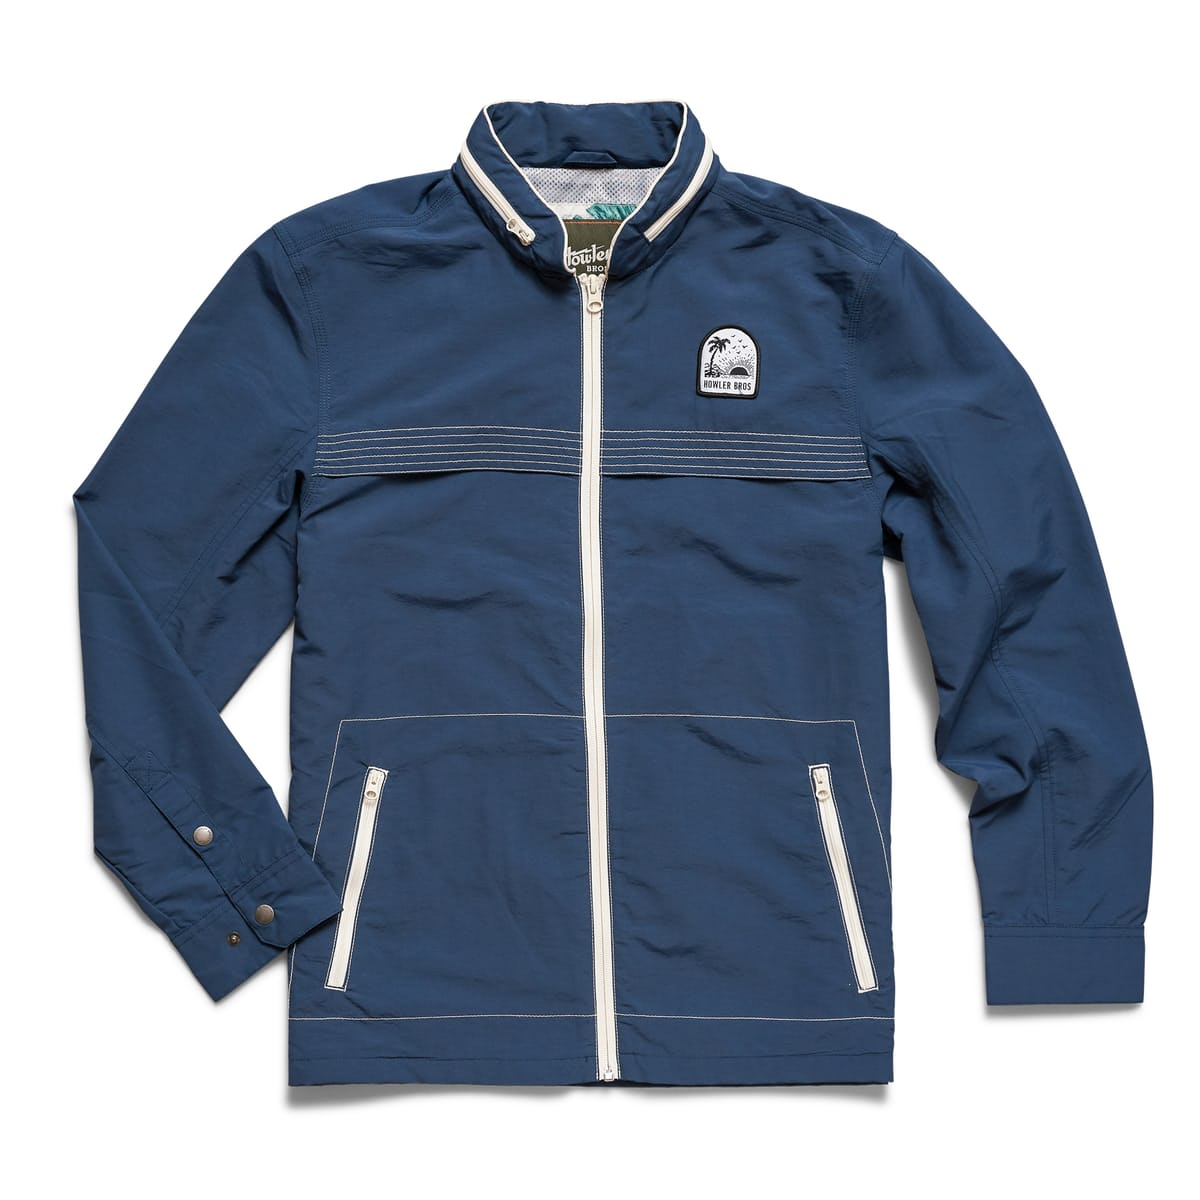 Howler Brothers Del Mar Session Shell Jacket